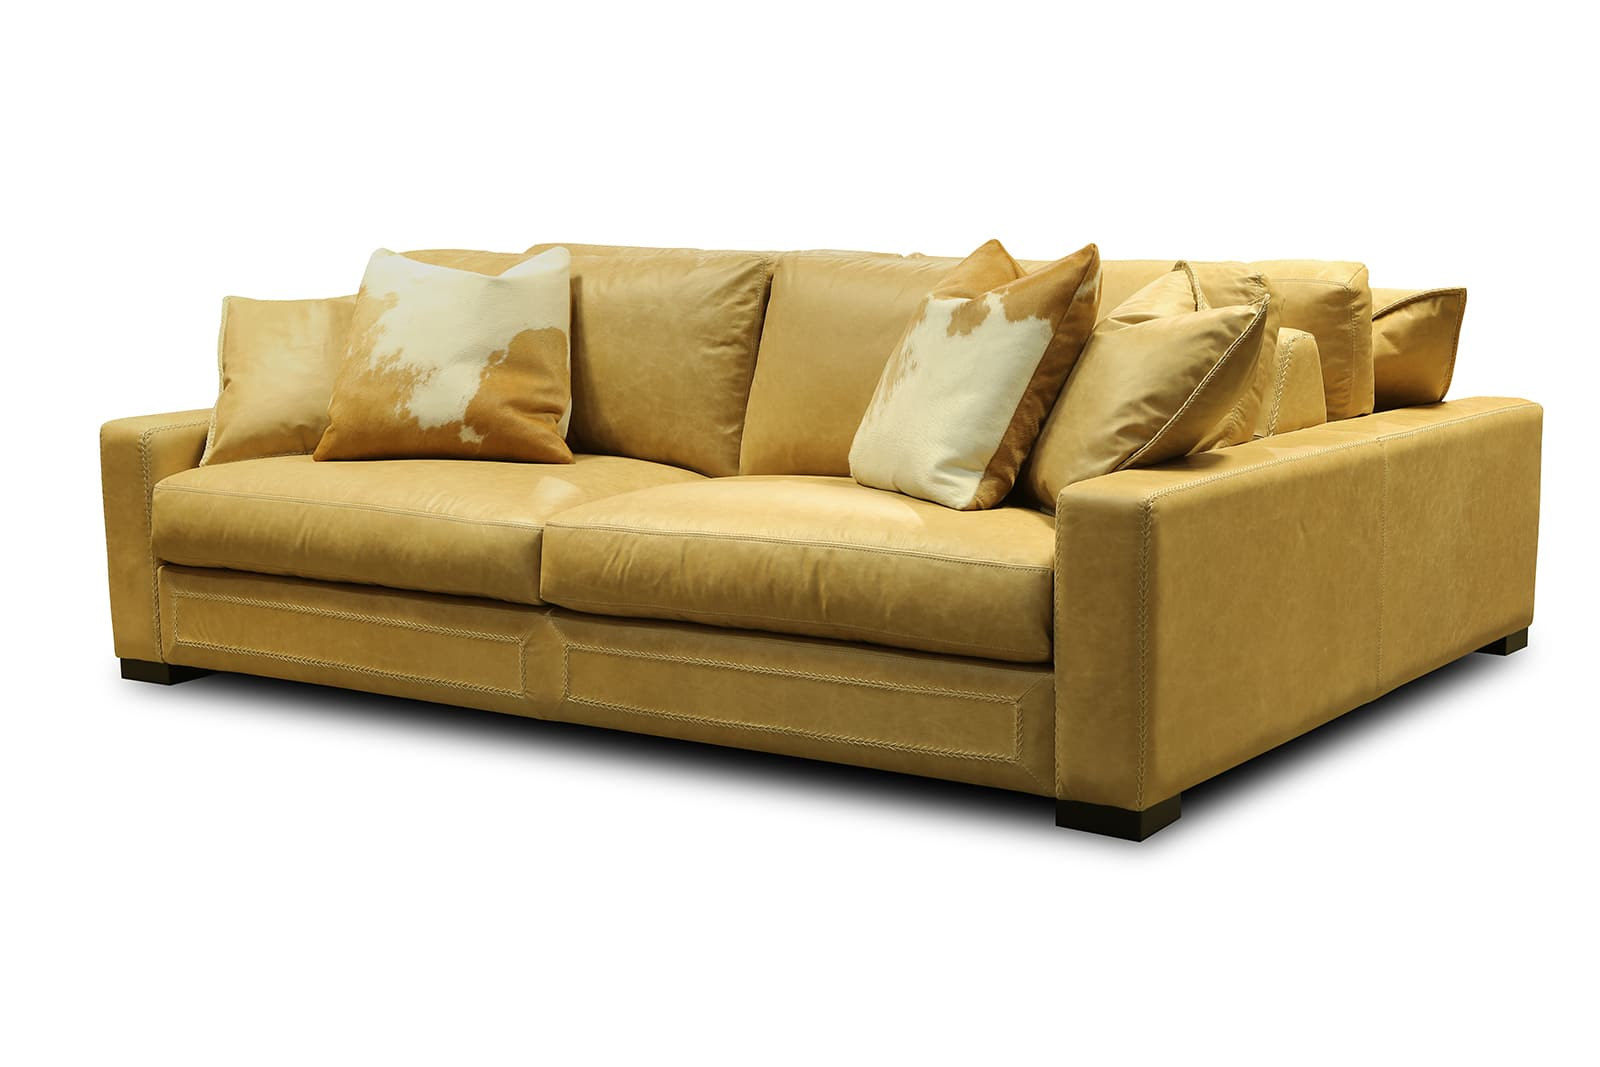 Downtown Cowboy 2 sided sofa 1